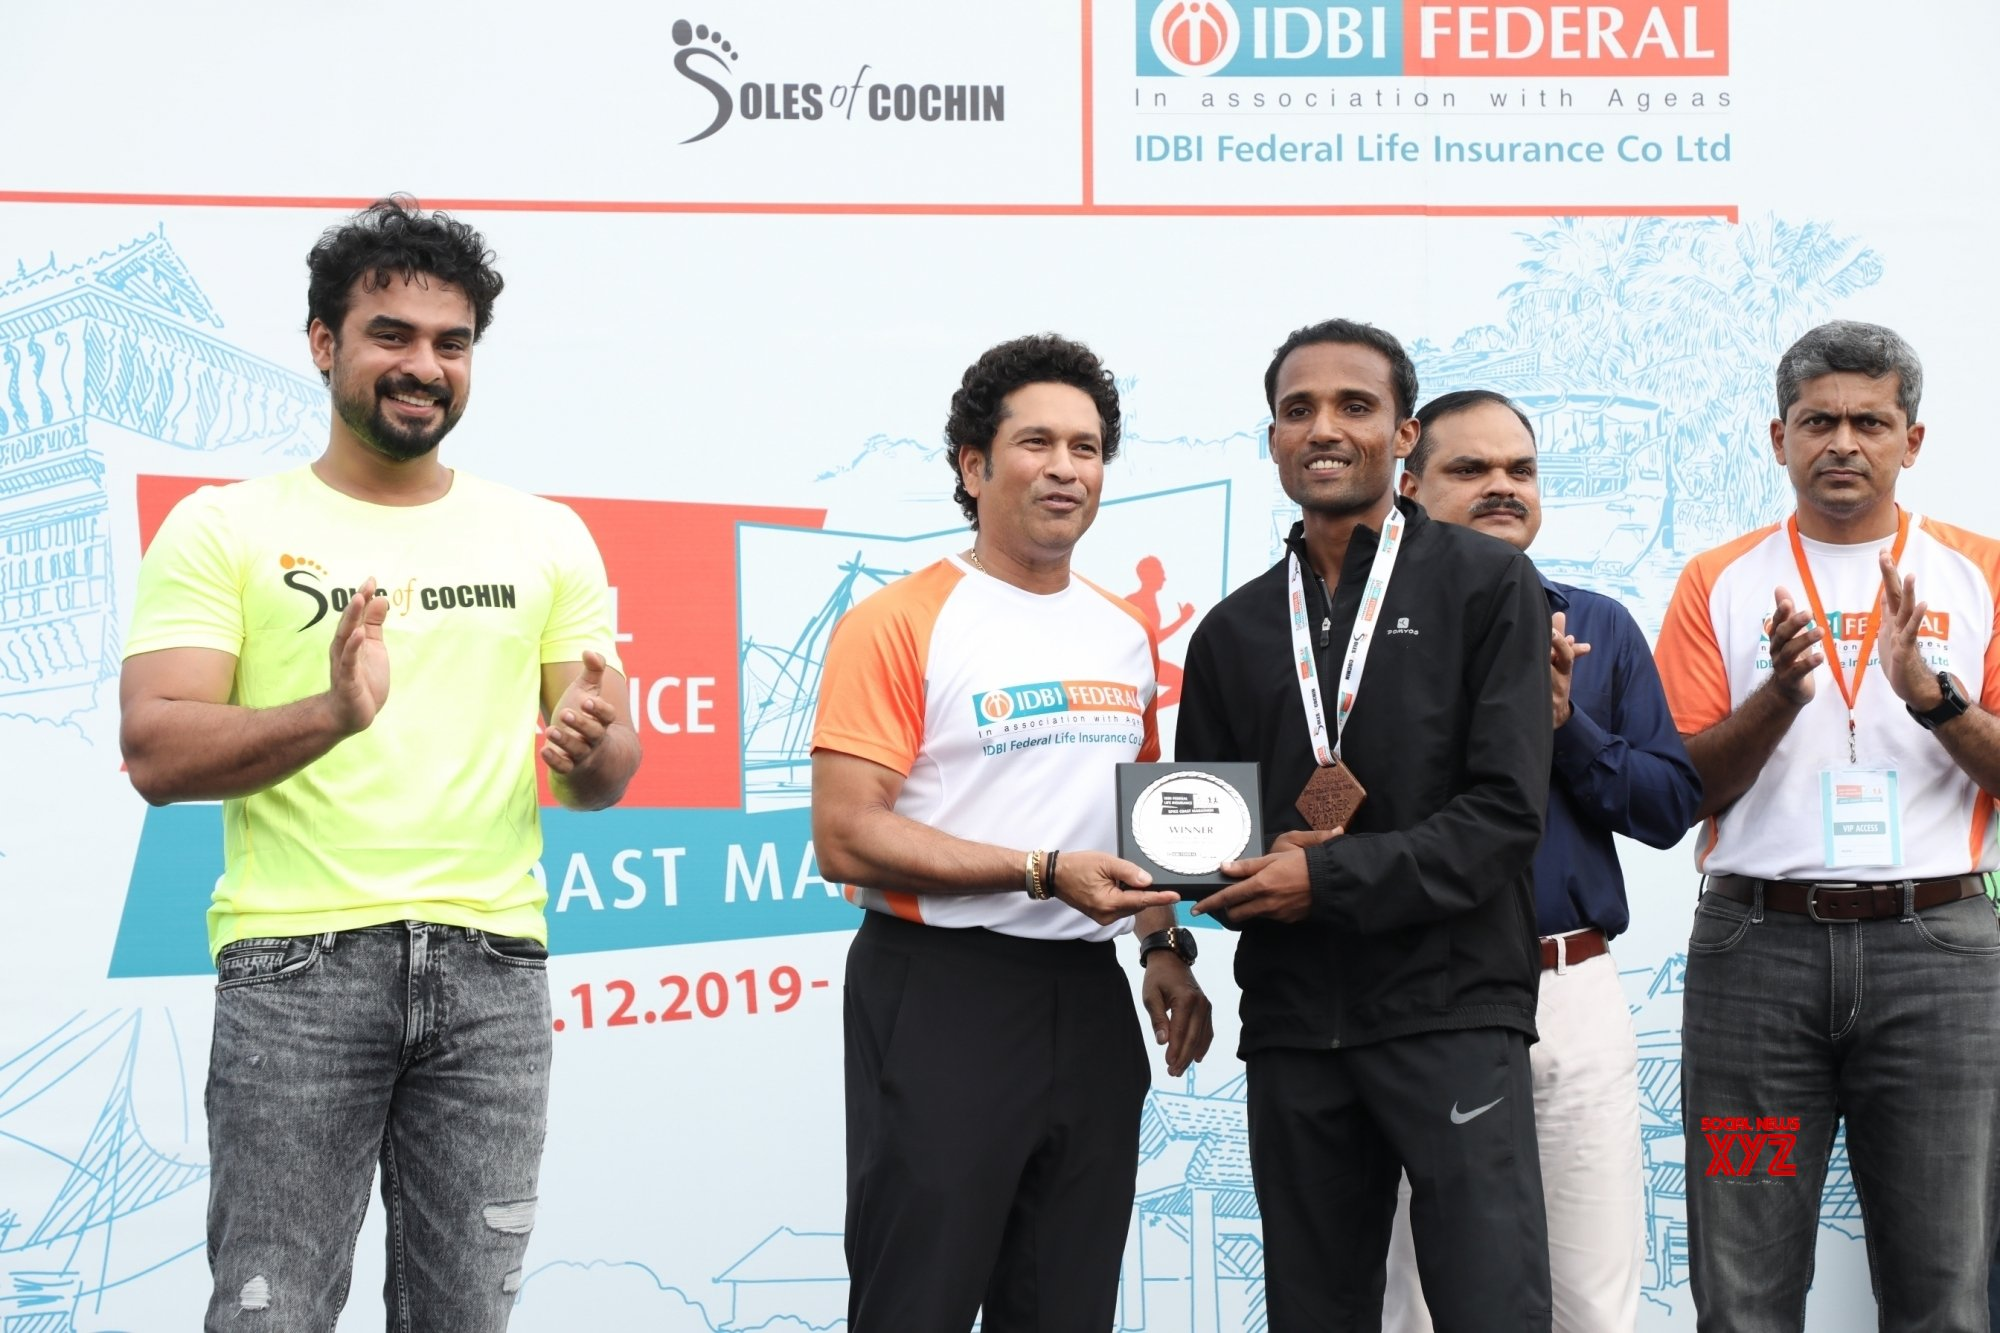 John Paul, Shino Mol bag gold at Spice Coast Marathon 2019